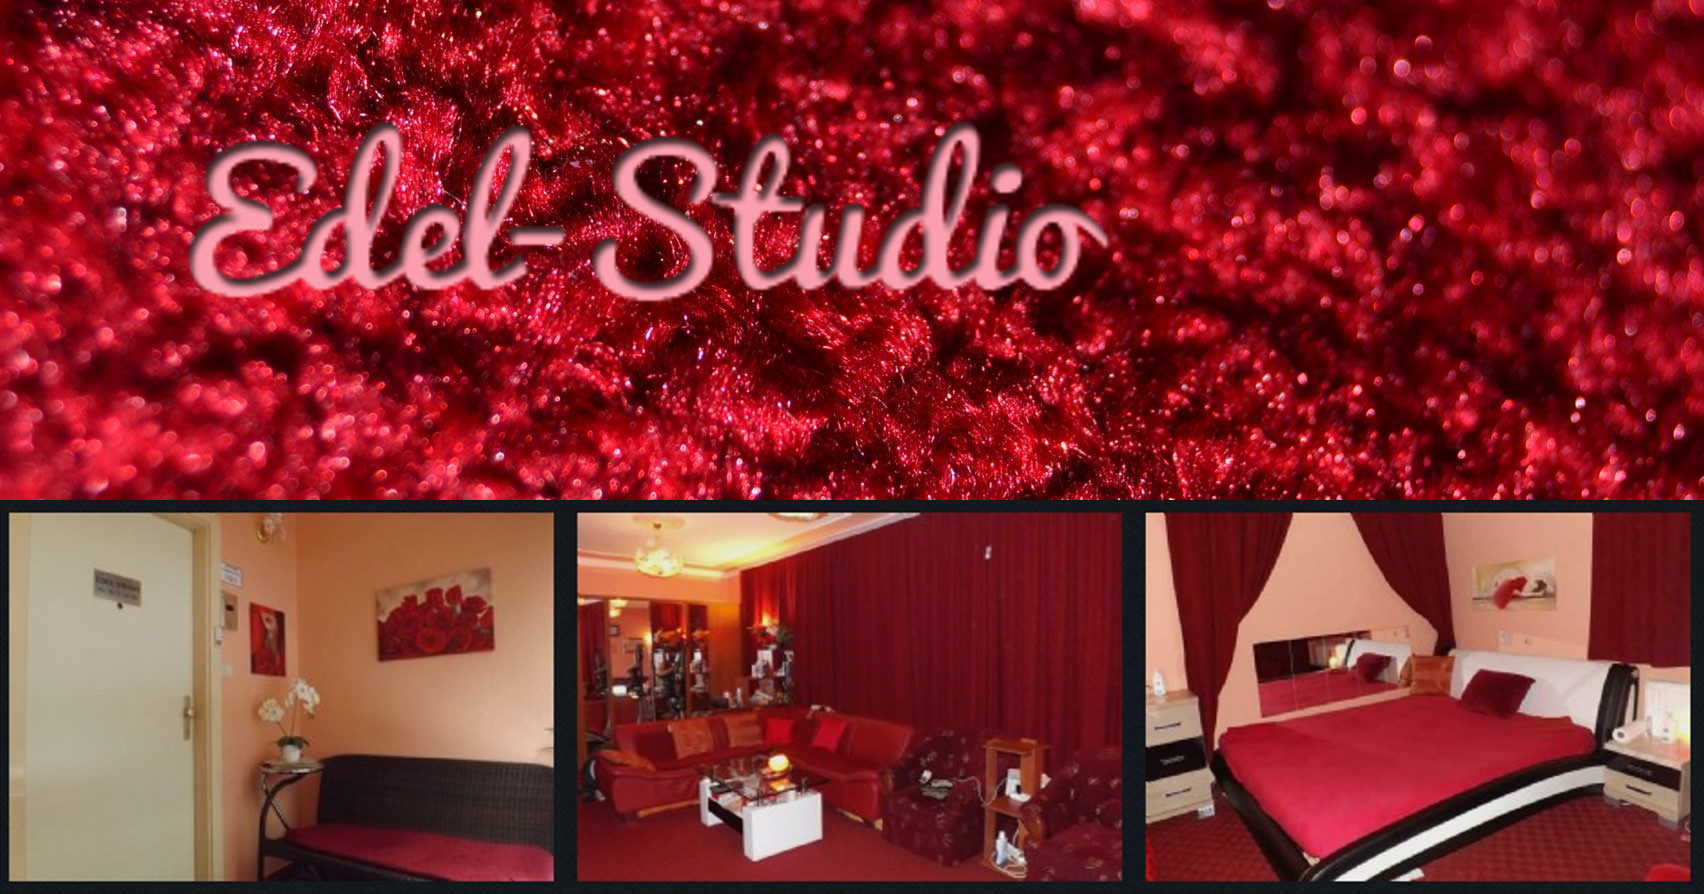 EDEL-Studio in 1170 Wien